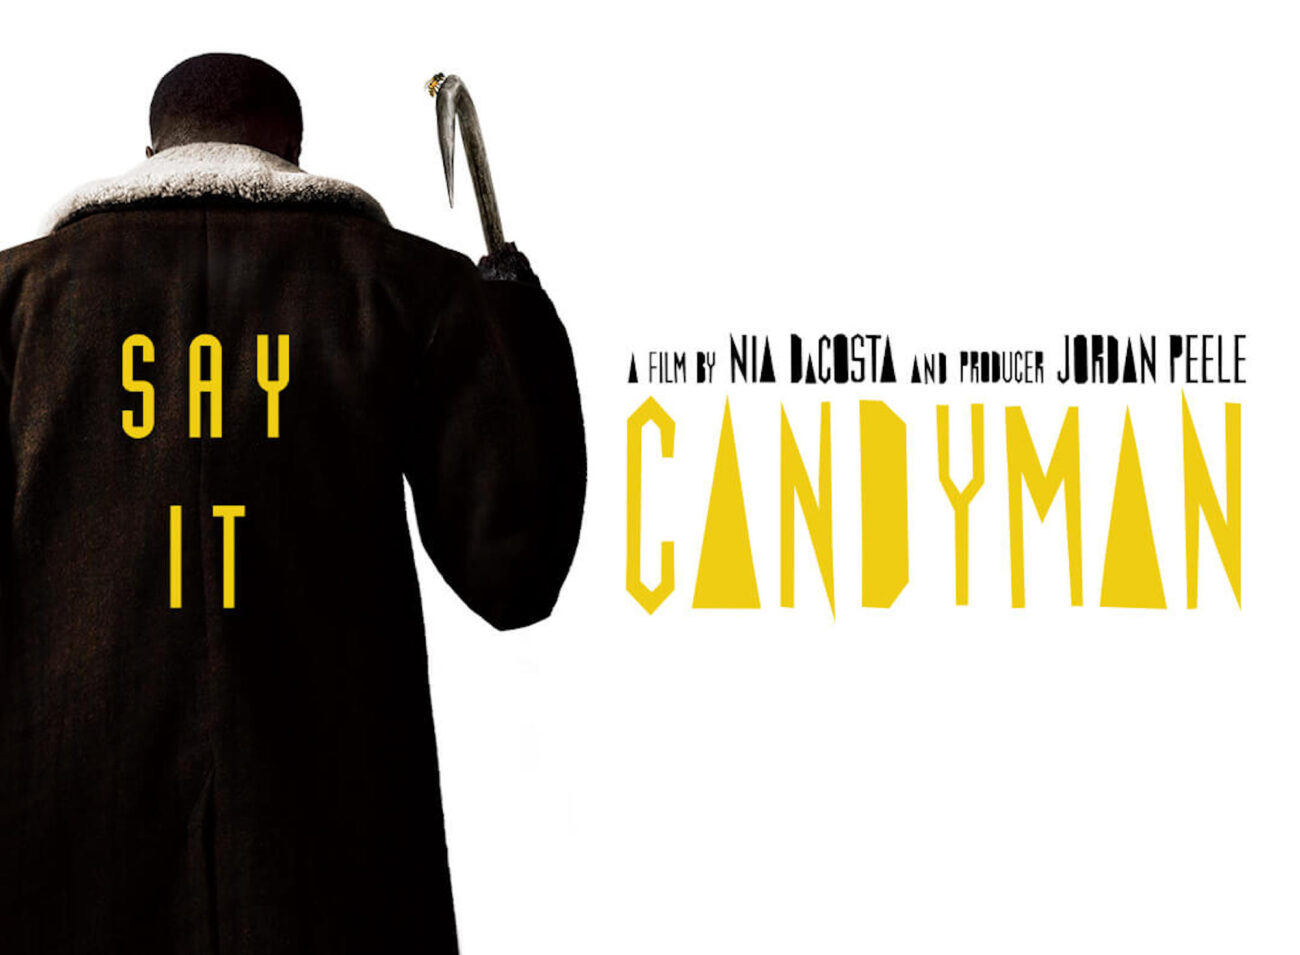 A new trailer just dropped for the 'Candyman' remake. Slice open the story and find out all the details from the long-awaited horror reboot.